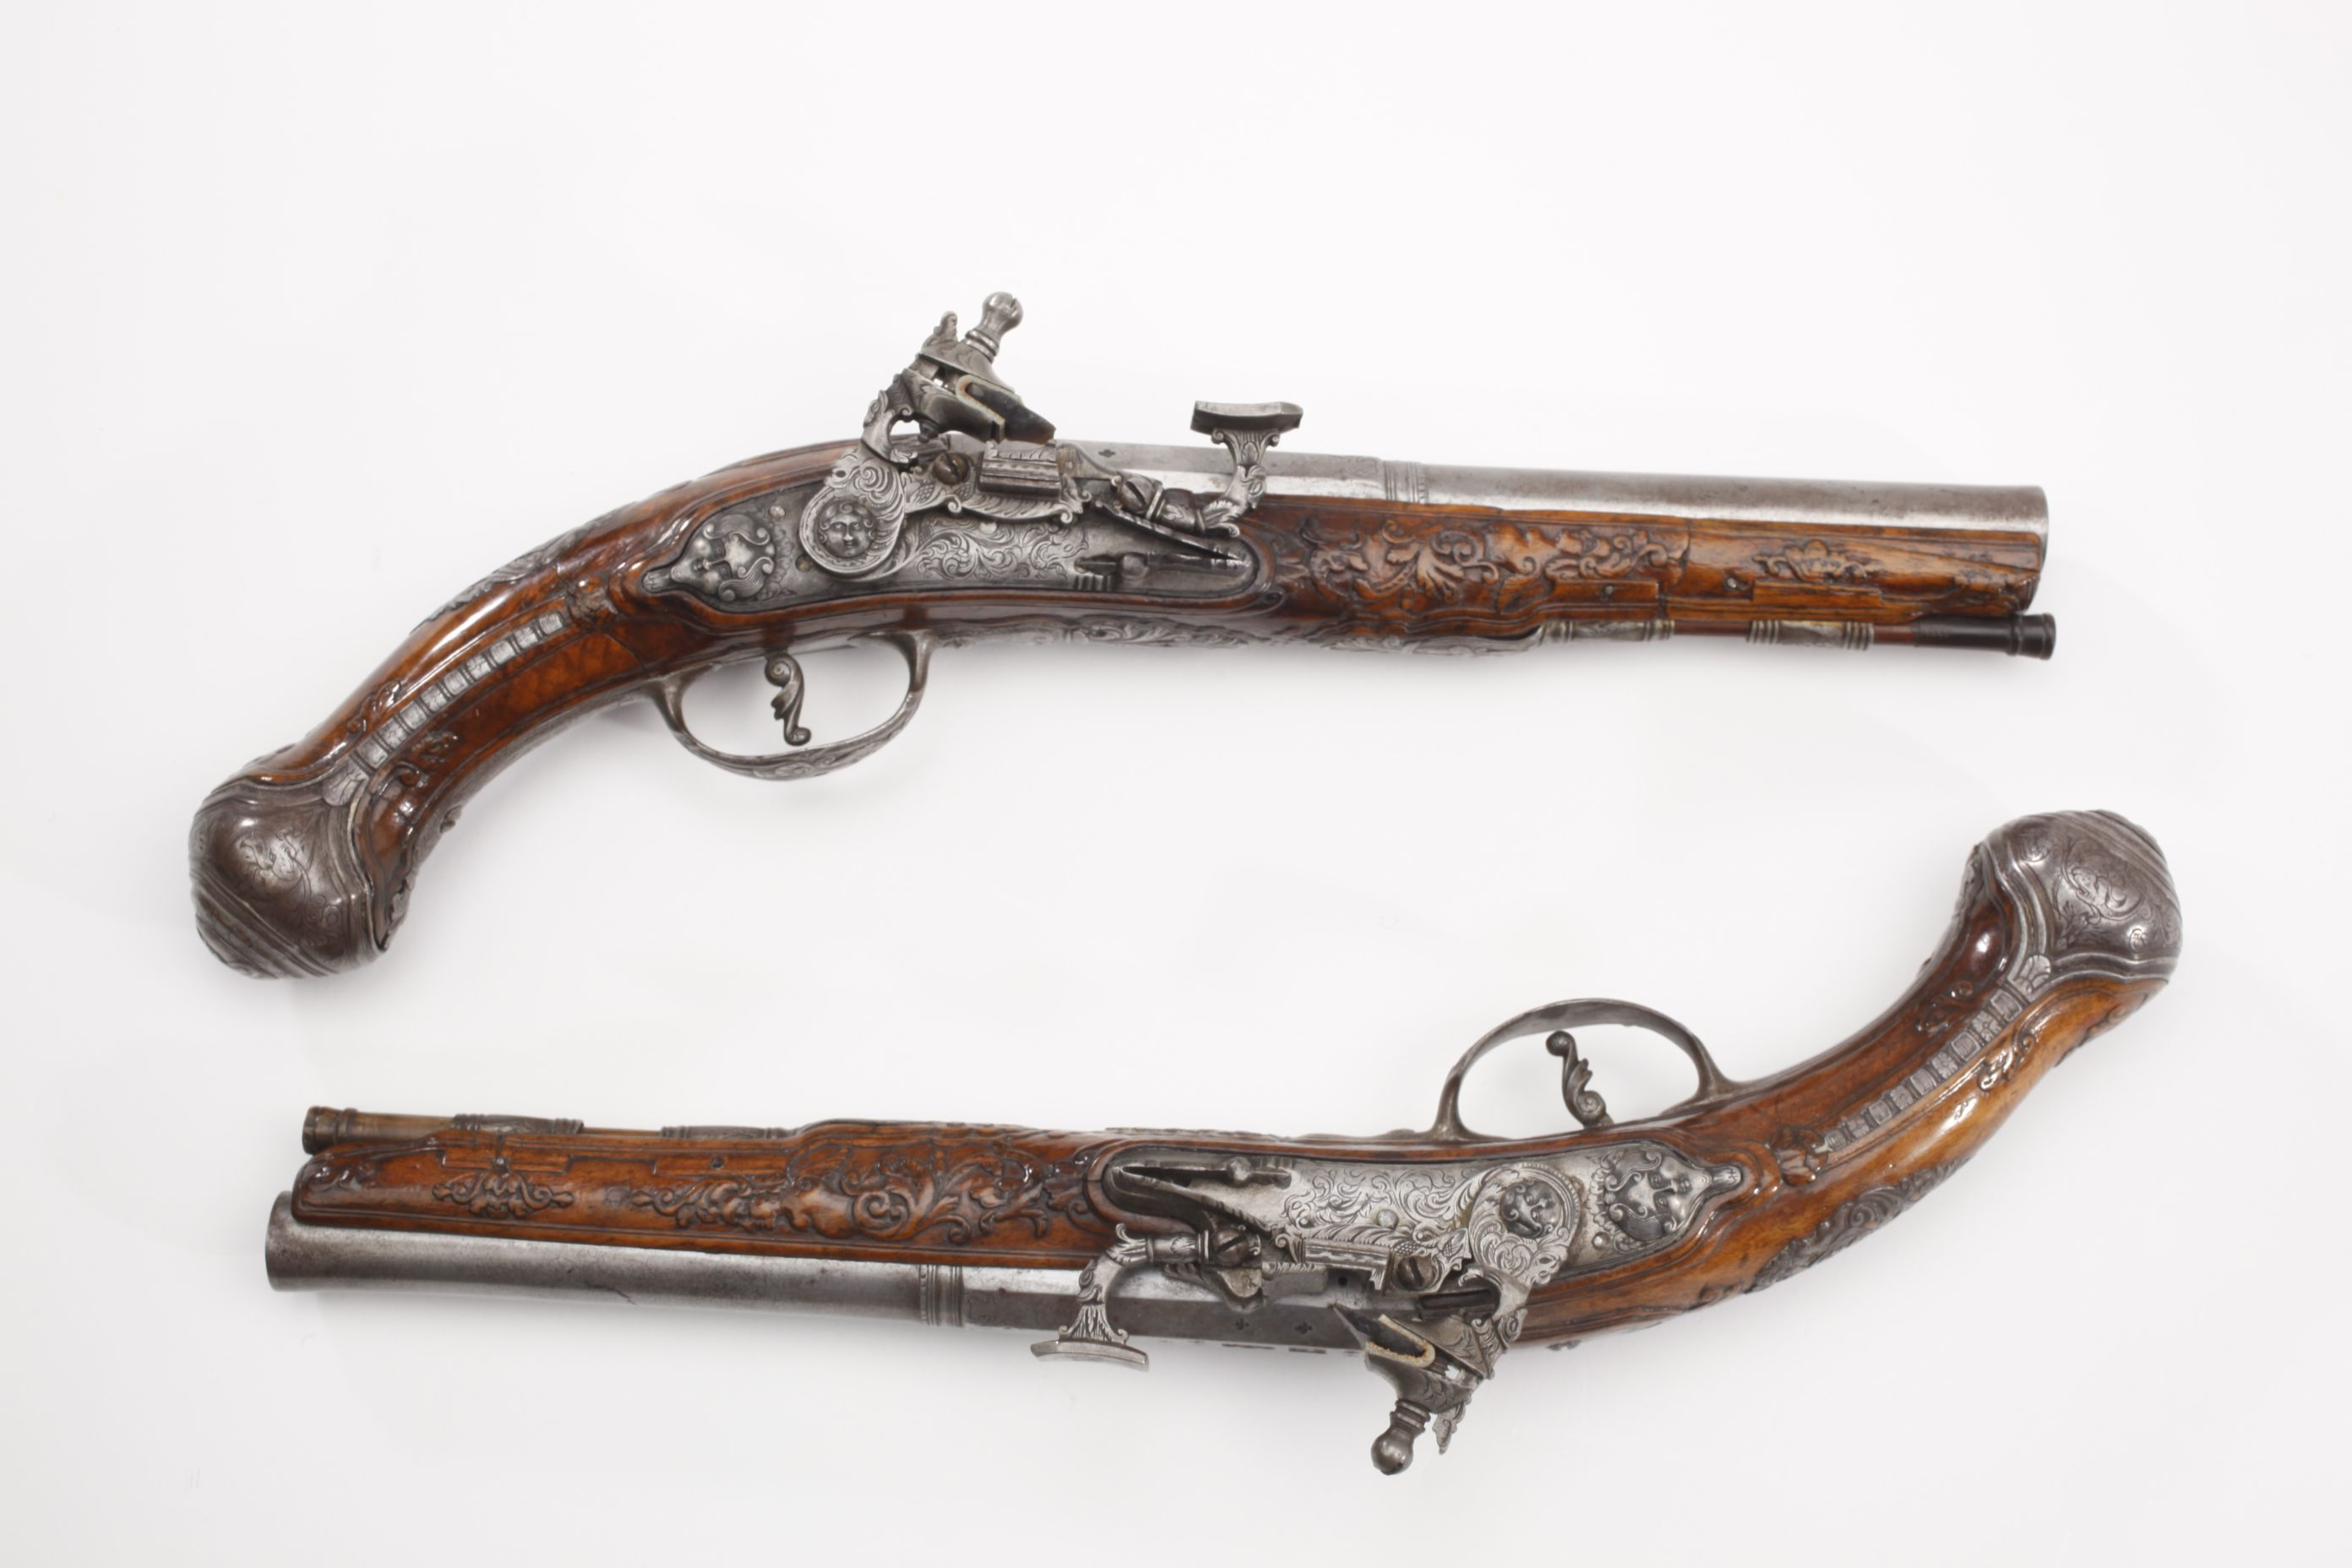 Teddy roosevelt guns to be displayed at nra national - Cassiano Zanotti Snaphaunce Pistol Pair This 60 Caliber Pair Incorporated The Snaphaunce Firing Mechanism